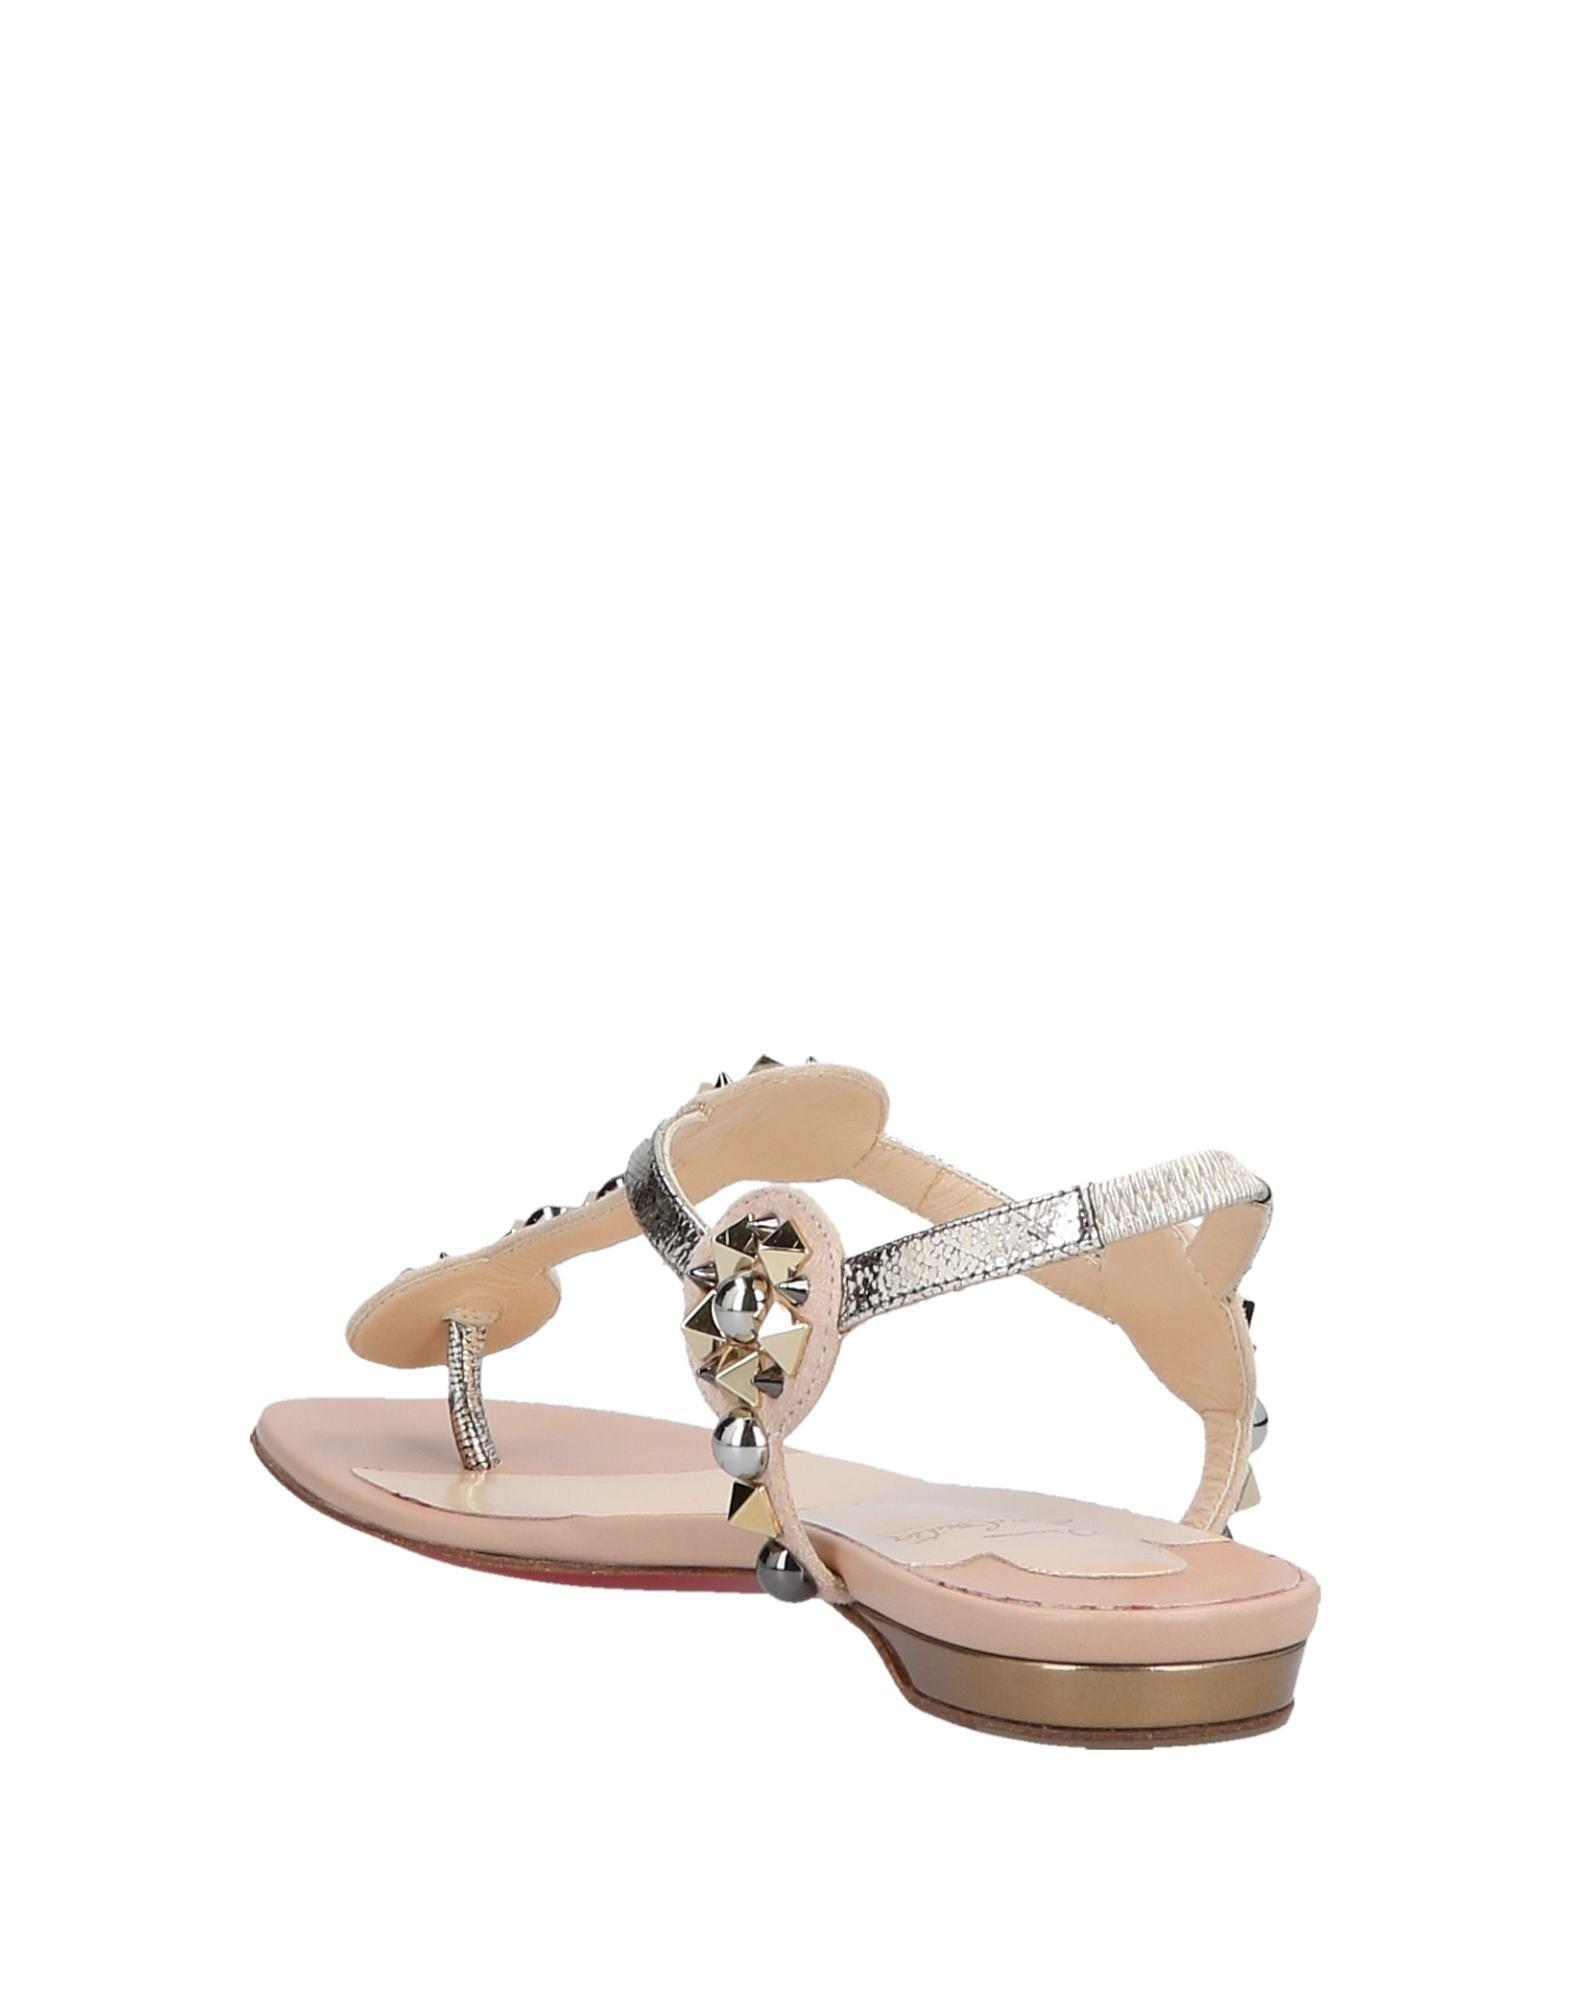 c0716a827598 Lyst - Christian Louboutin Toe Post Sandal in Pink